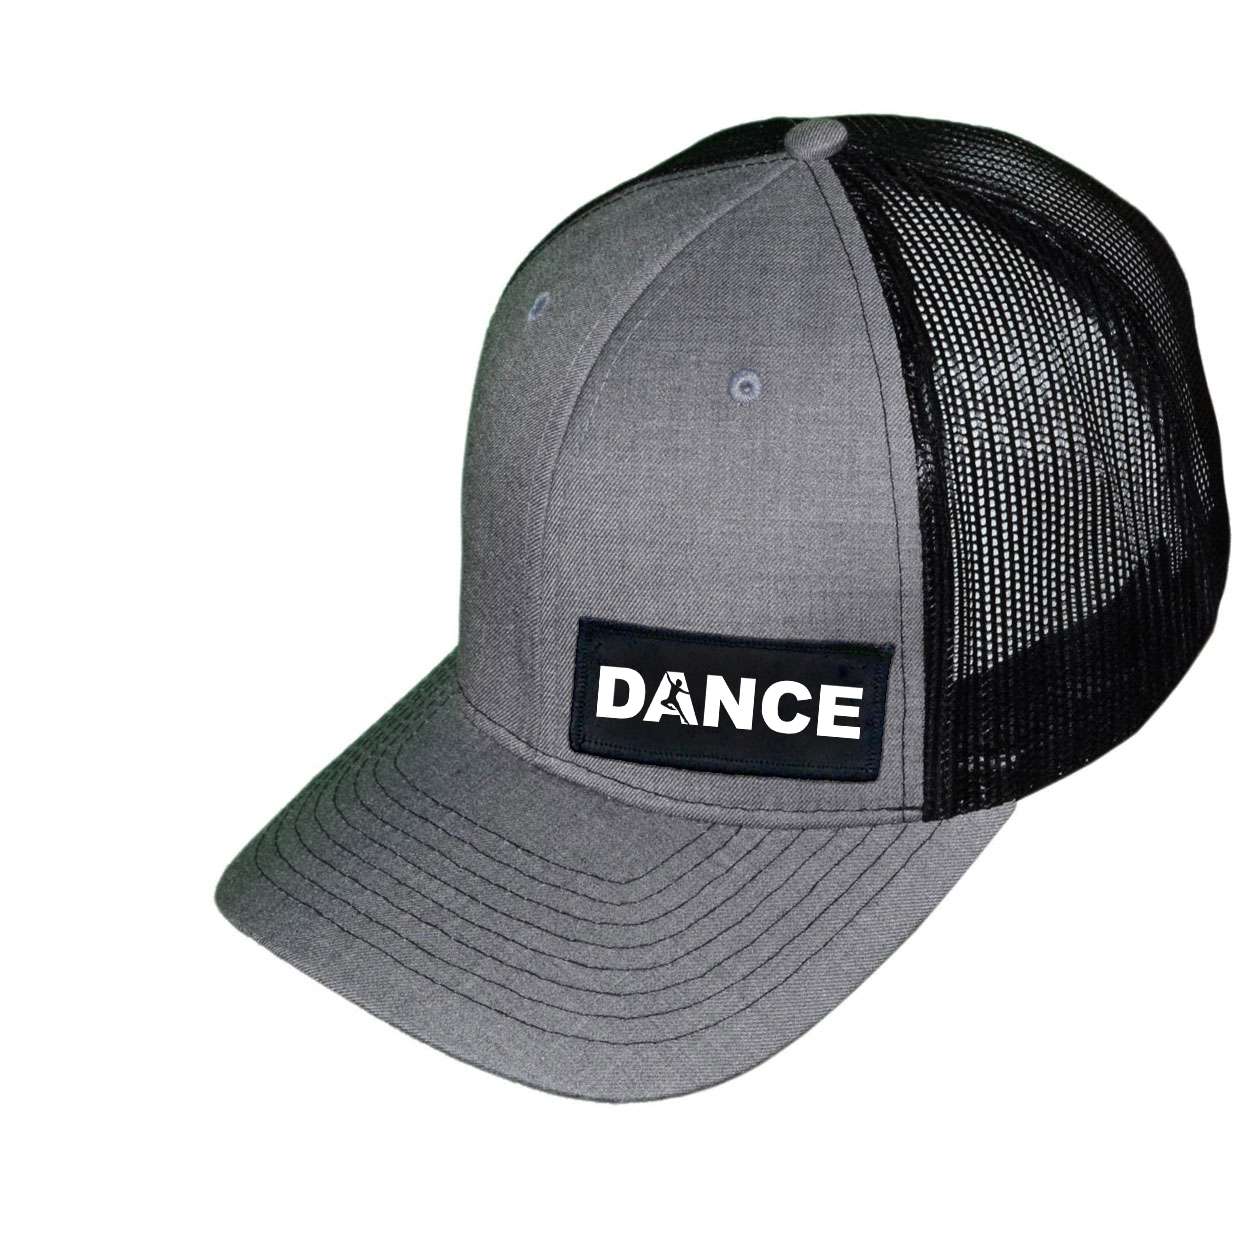 Dance Silhouette Logo Night Out Woven Patch Snapback Trucker Hat Heather Gray/Black (White Logo)